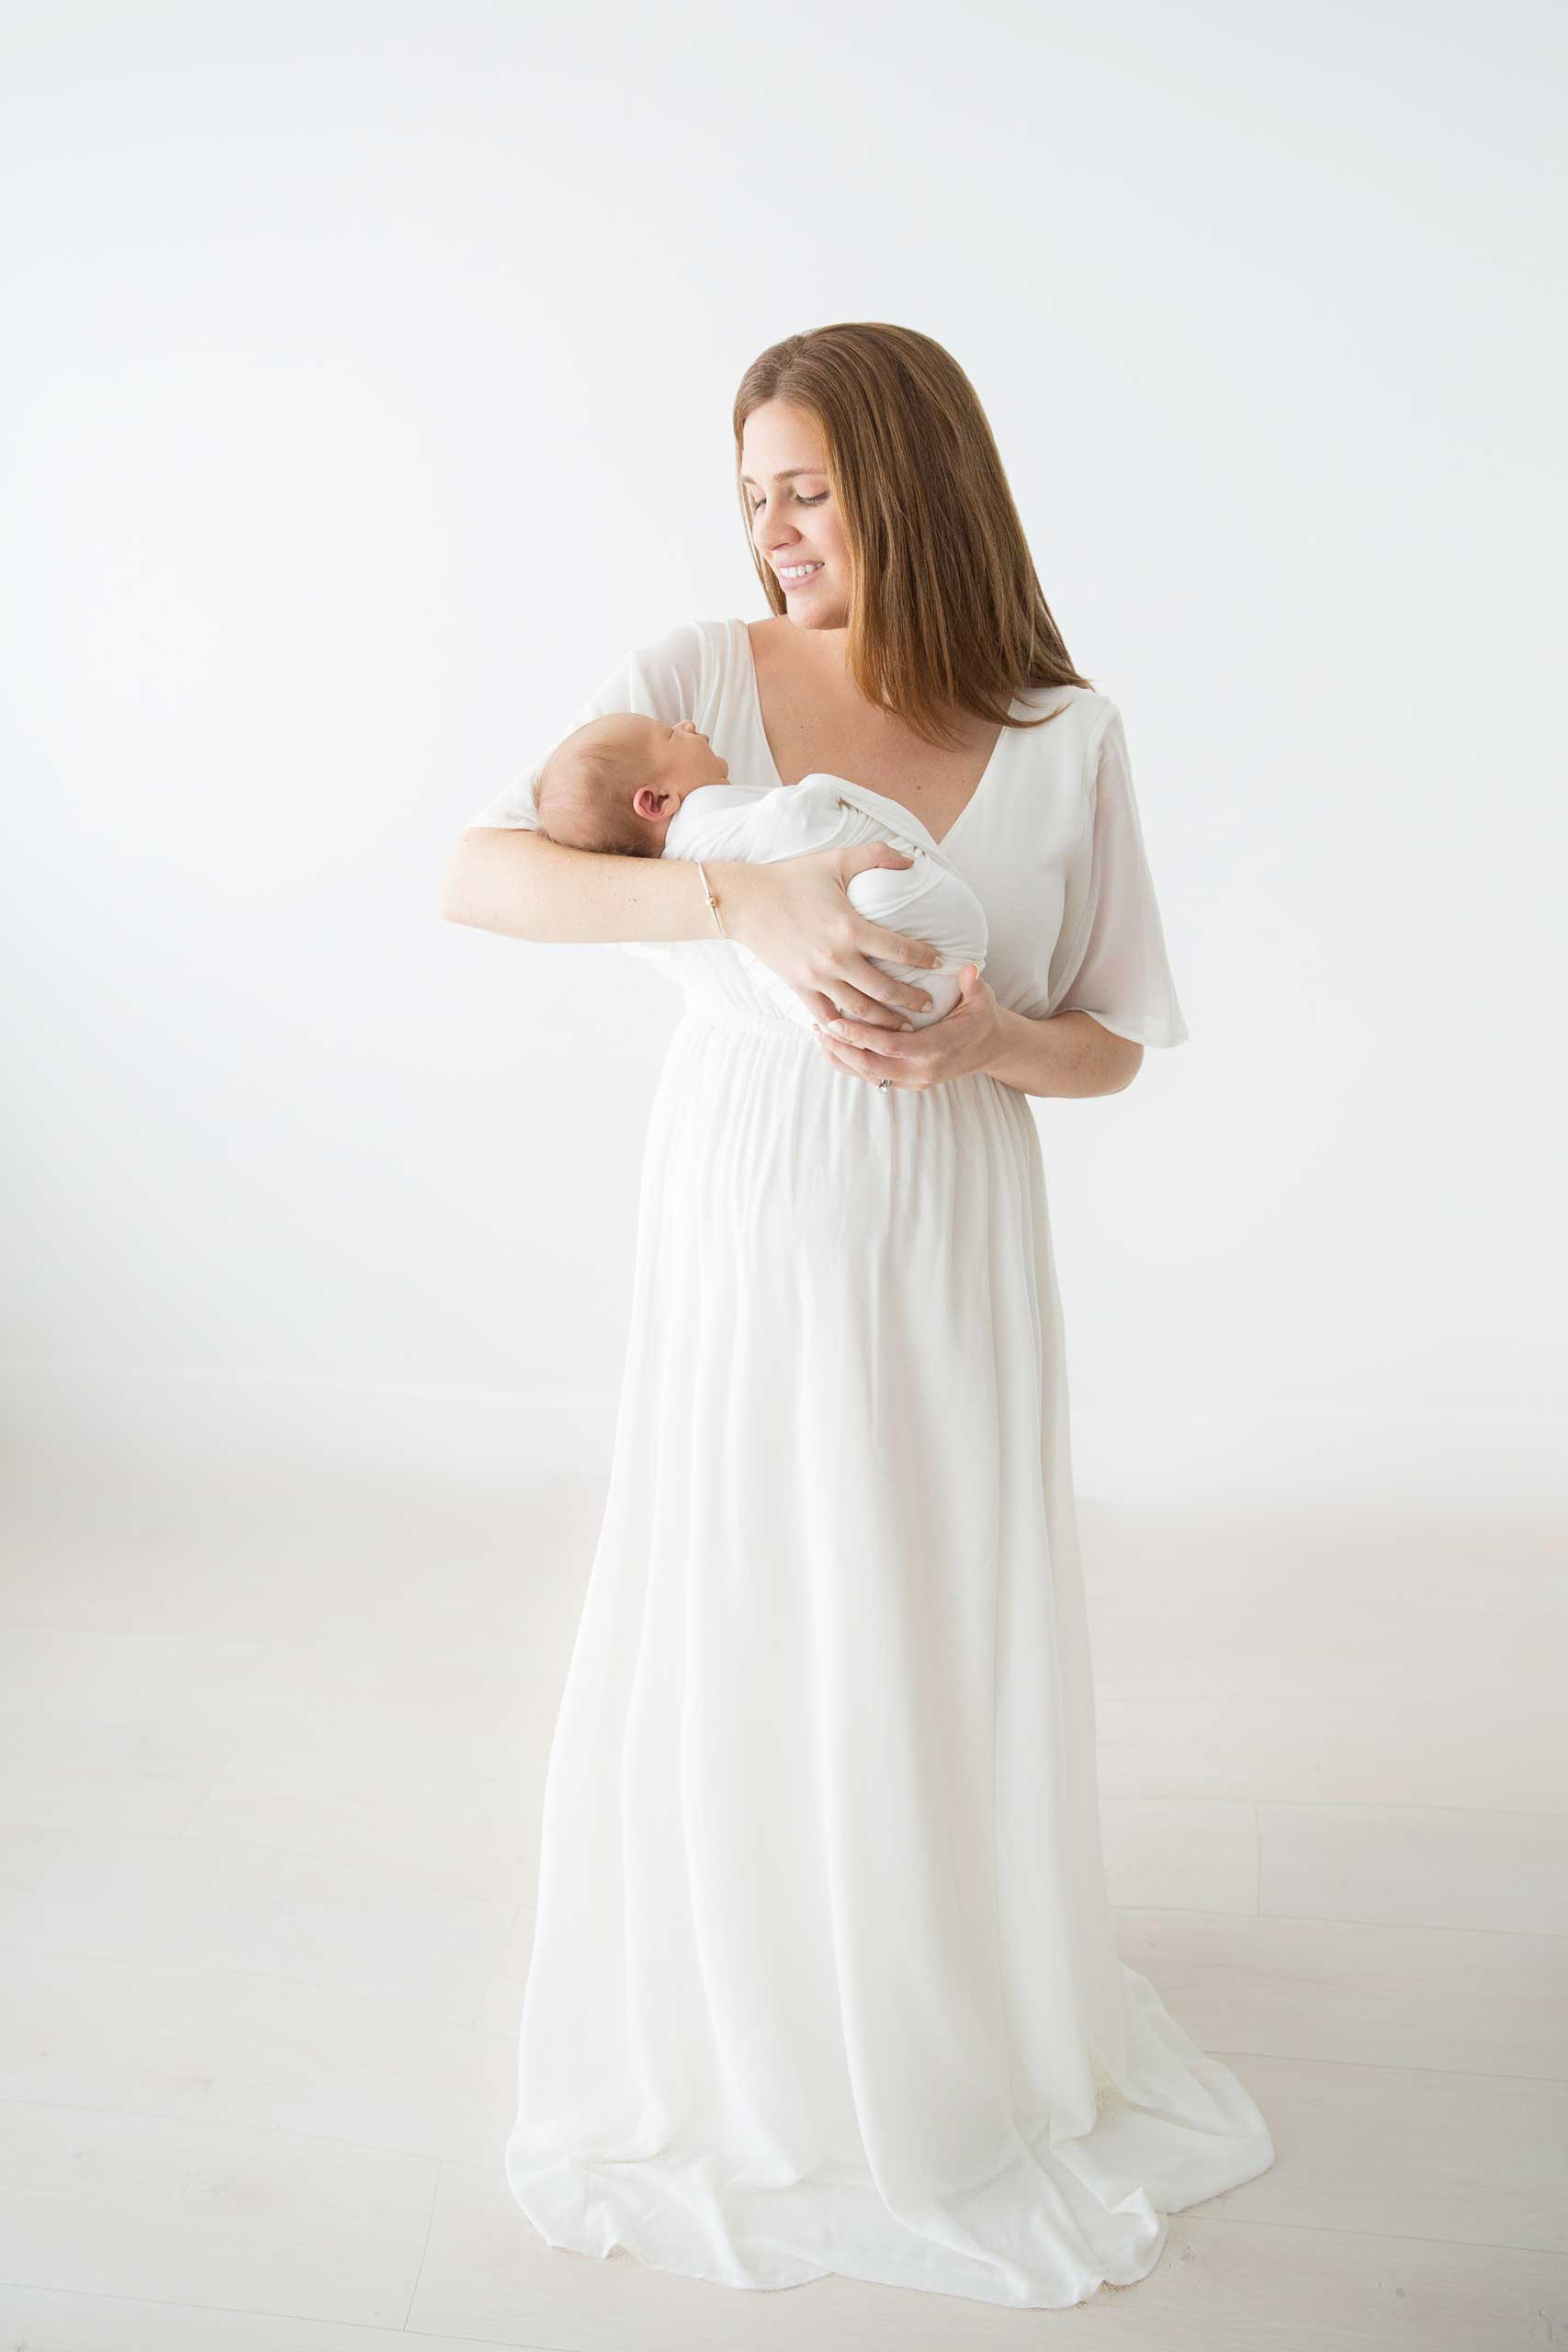 baby and mommy photograph taken in Los Angeles by Ramina Magid Photography